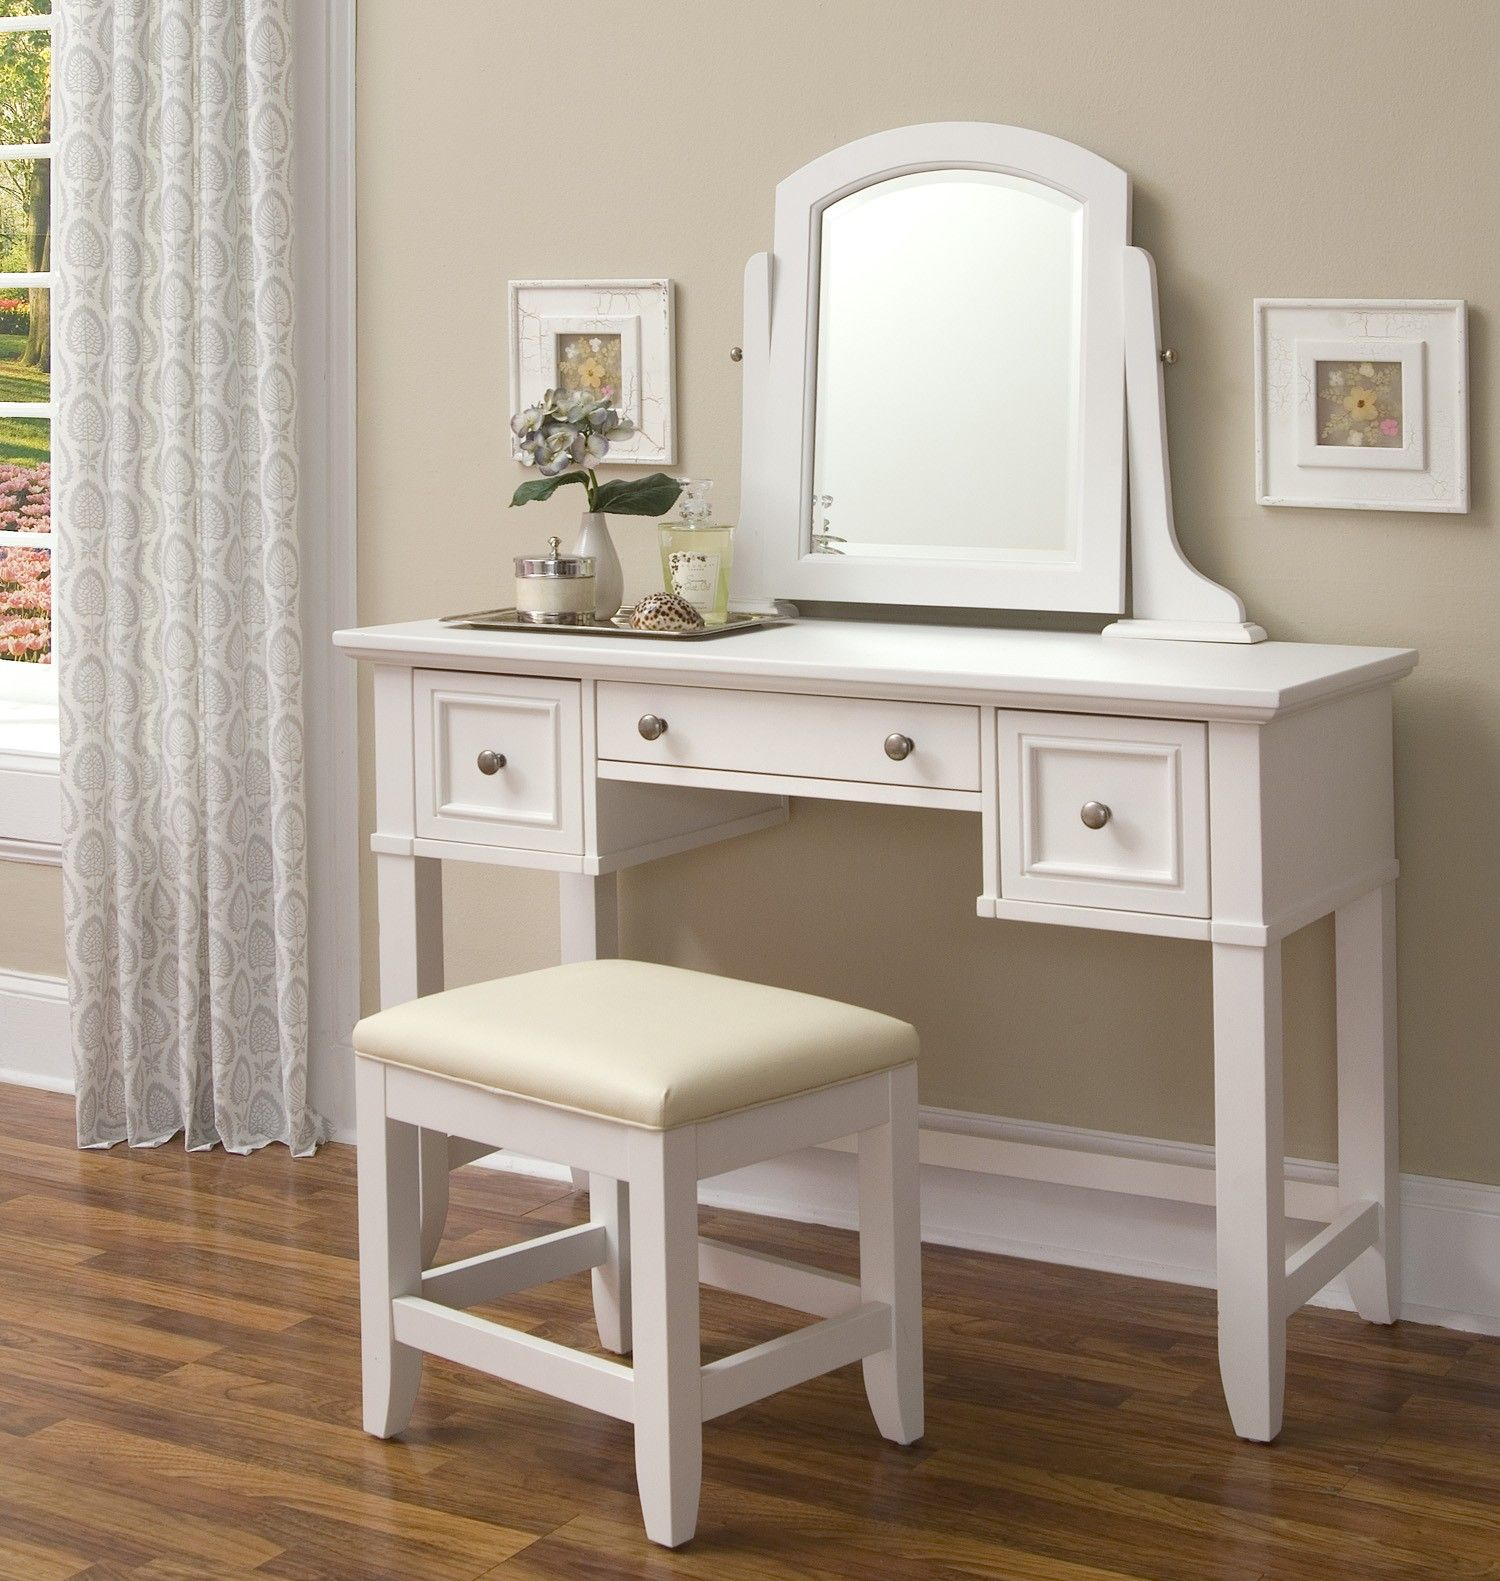 Modern dresser with mirror and chair - Cool White Makeup Vanity Table With Single Mirror And Three Drawer Storage Feat Bench On Wooden